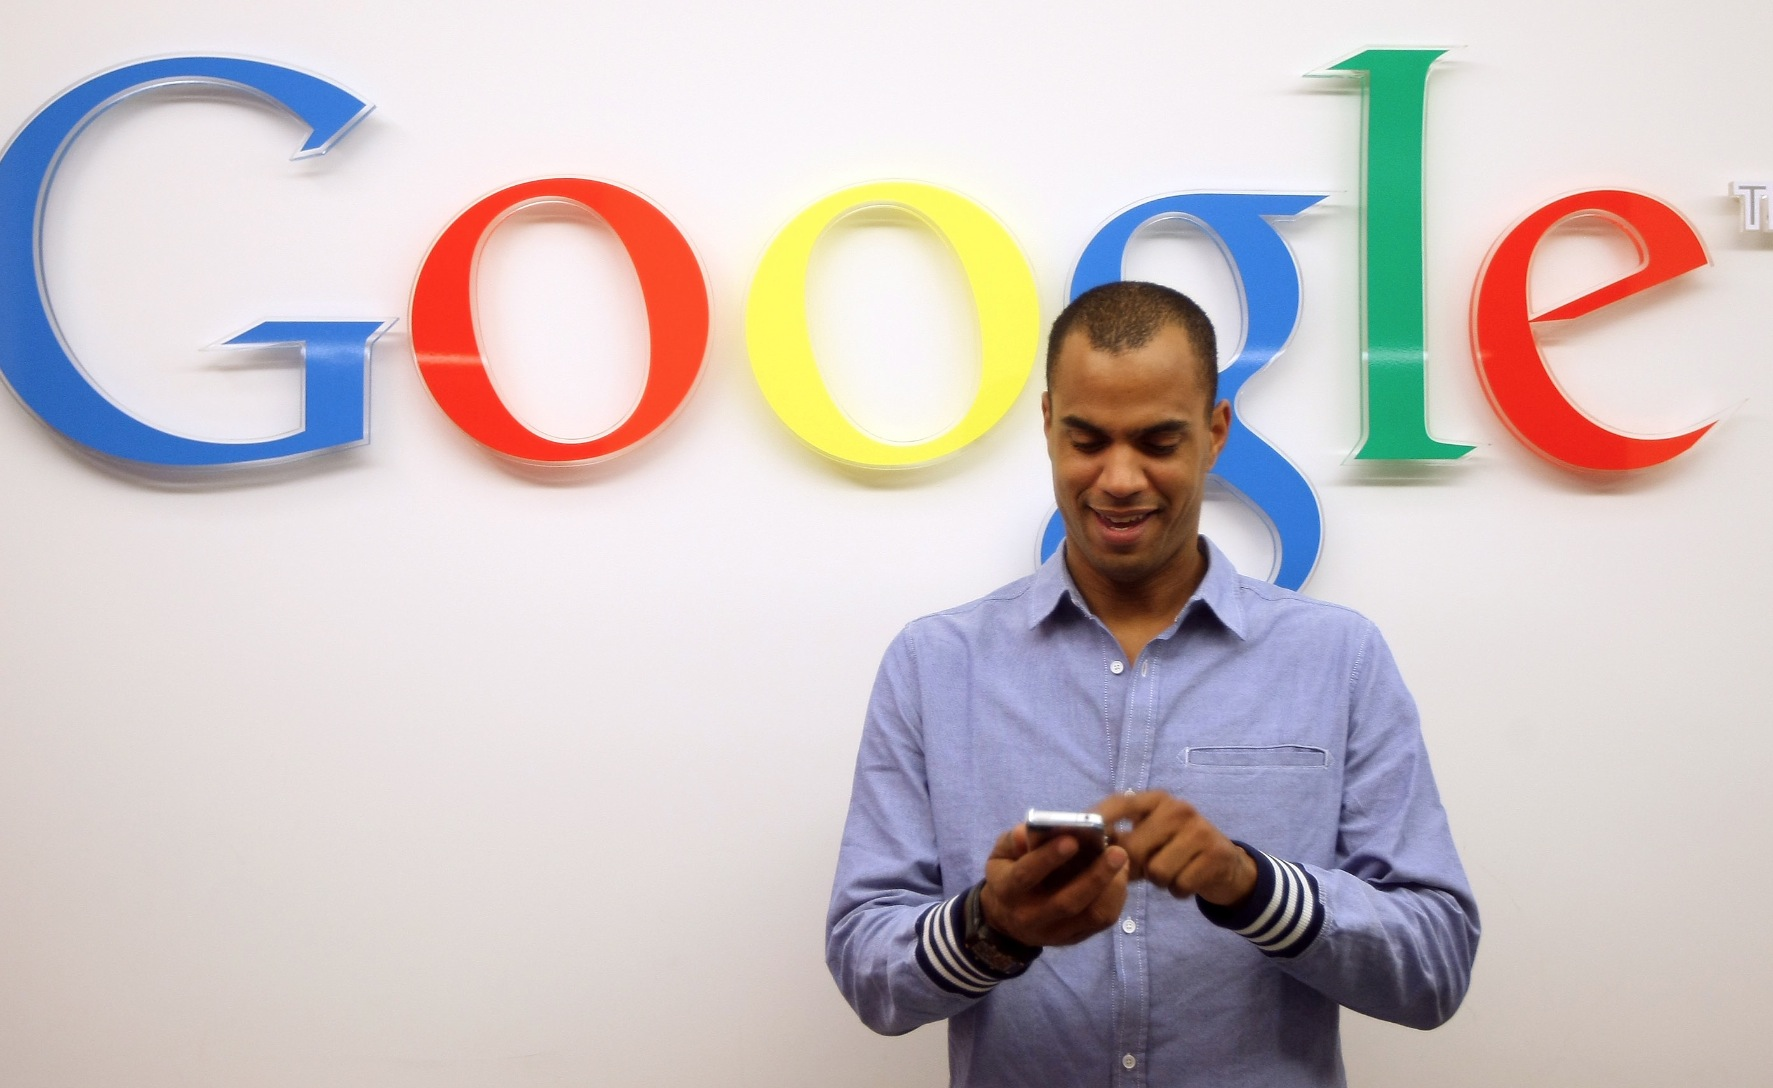 Google adds 100 virtual keyboards, transliteration and IMEs to Gmail for better language support